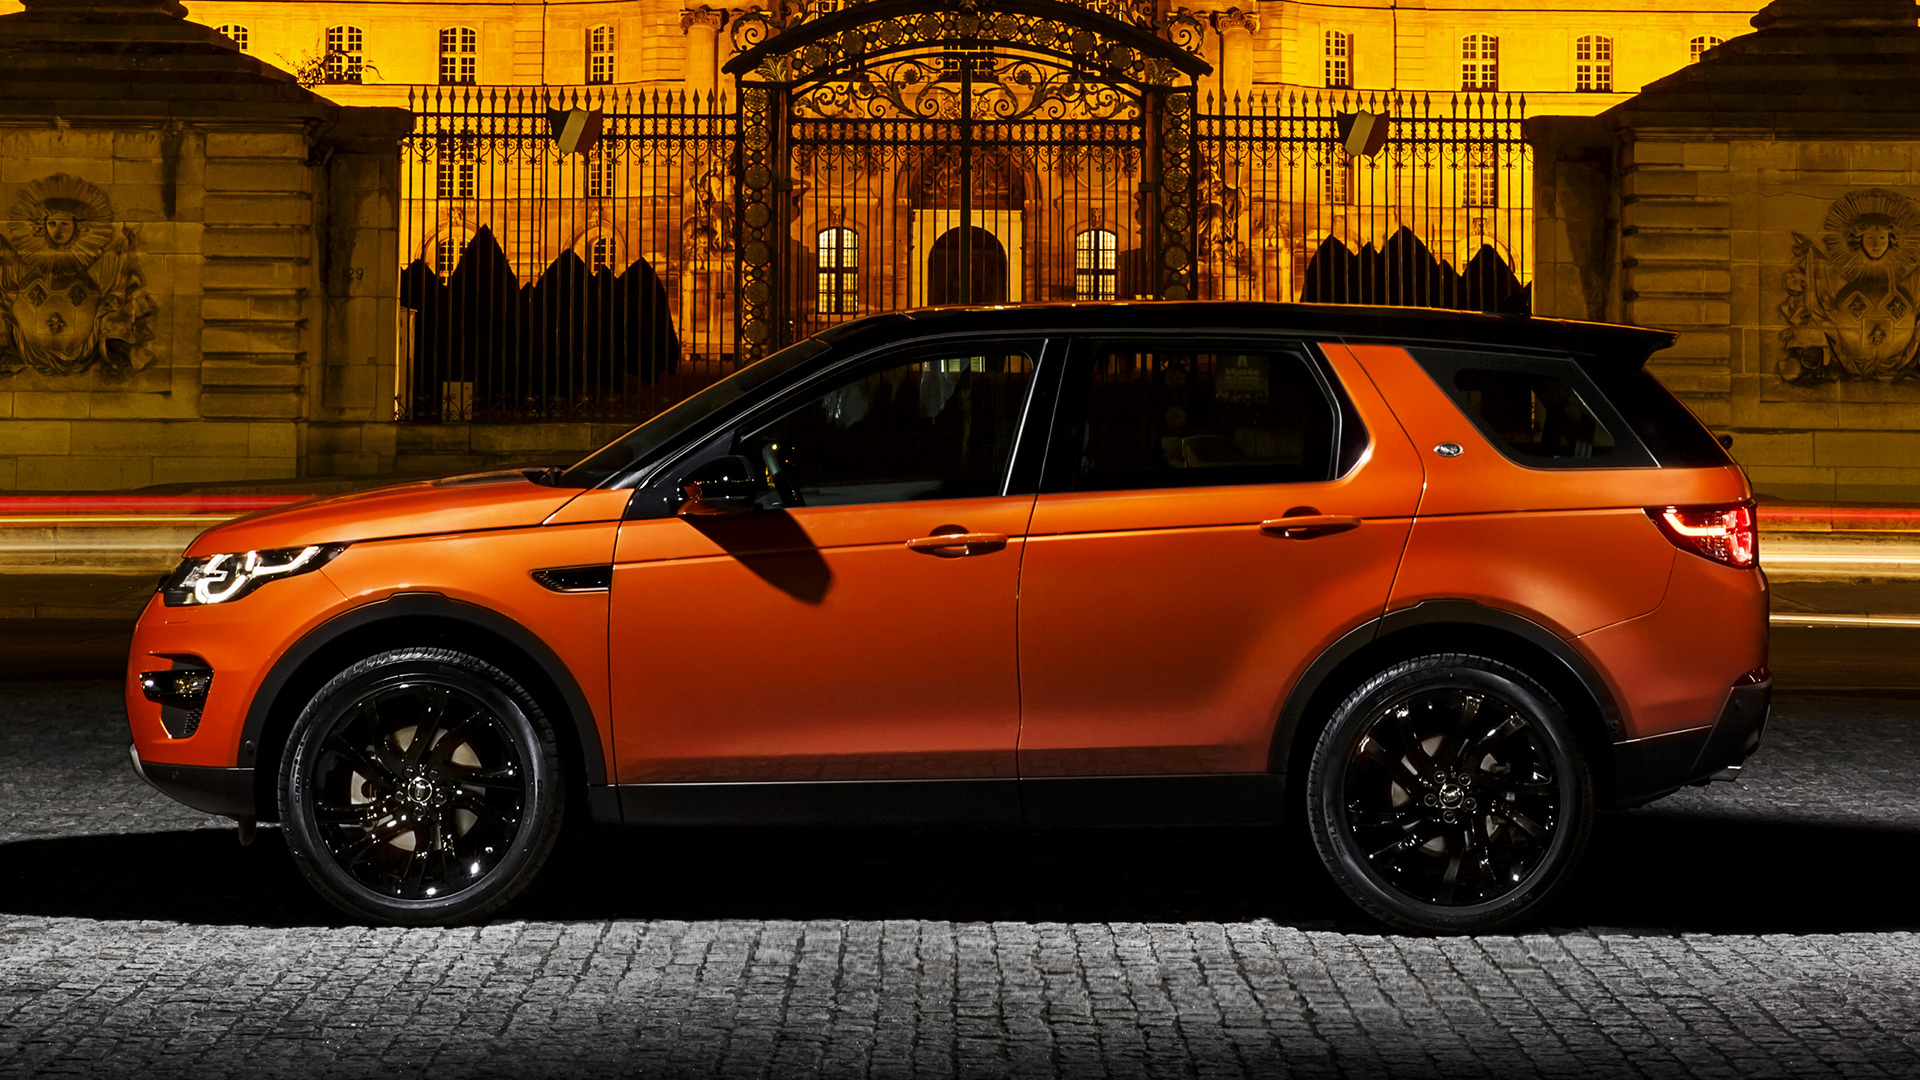 Wallpaper Land Rover Discovery Sport: 2015 Land Rover Discovery Sport HSE Luxury Black Design